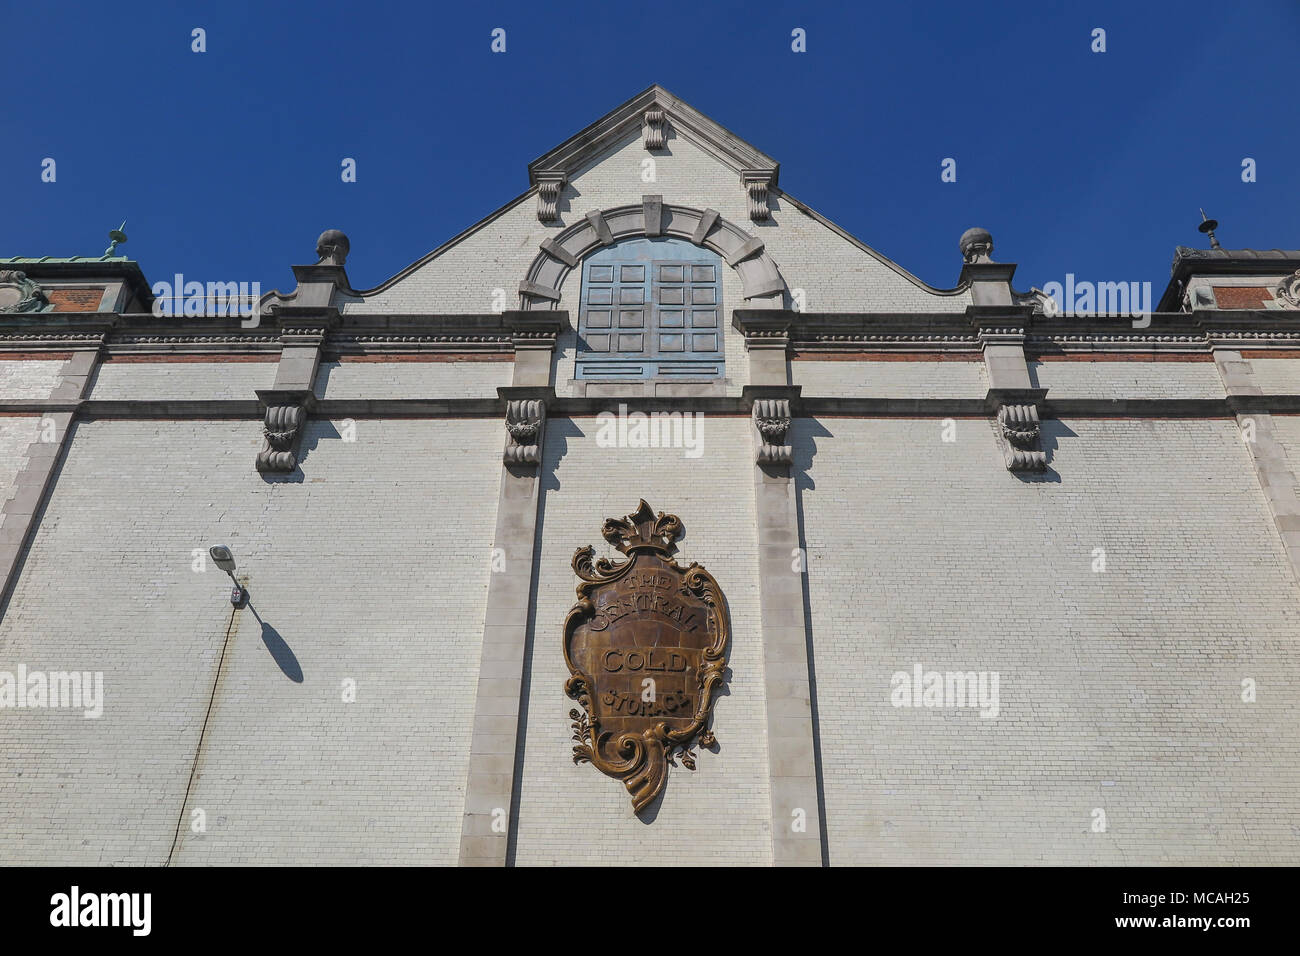 The Central Cold Storage crest at on a historic building in Charterhouse Street London England, near Smithfields market - Stock Image